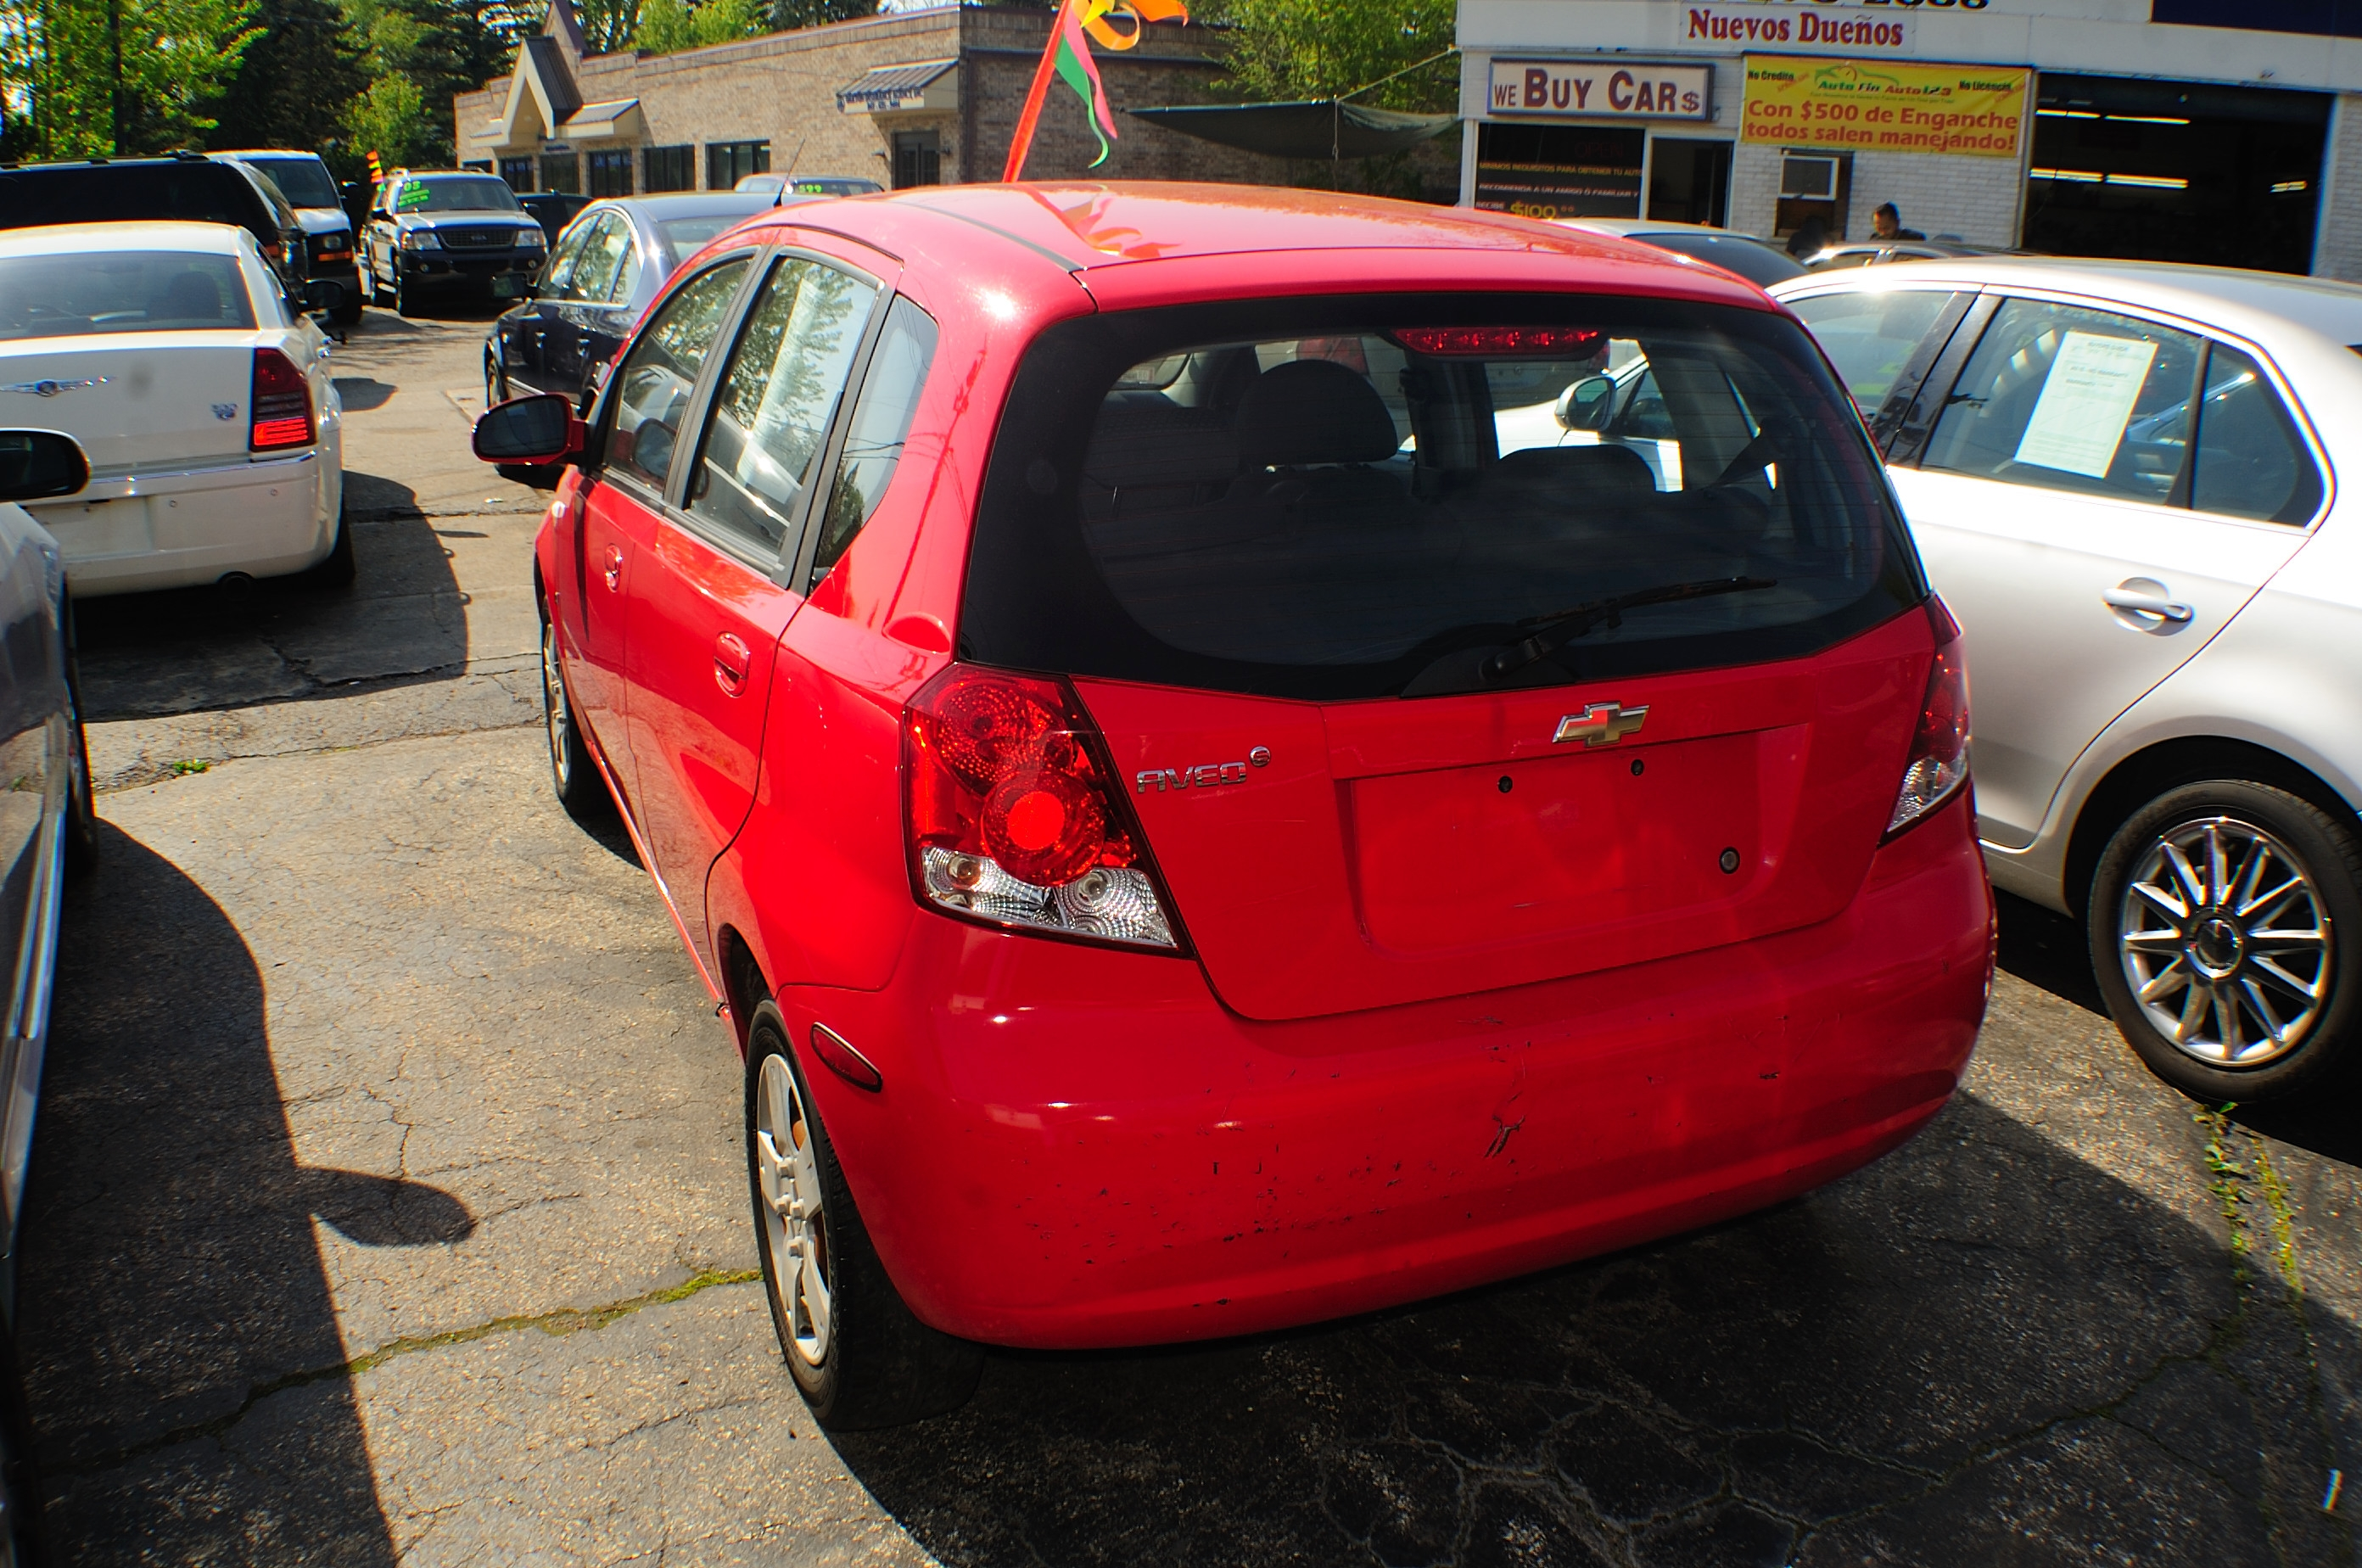 2008 Chevrolet Aveo Red Manual Used Compact car sale Gurnee Hanover Park Hoffman Estates Lombard